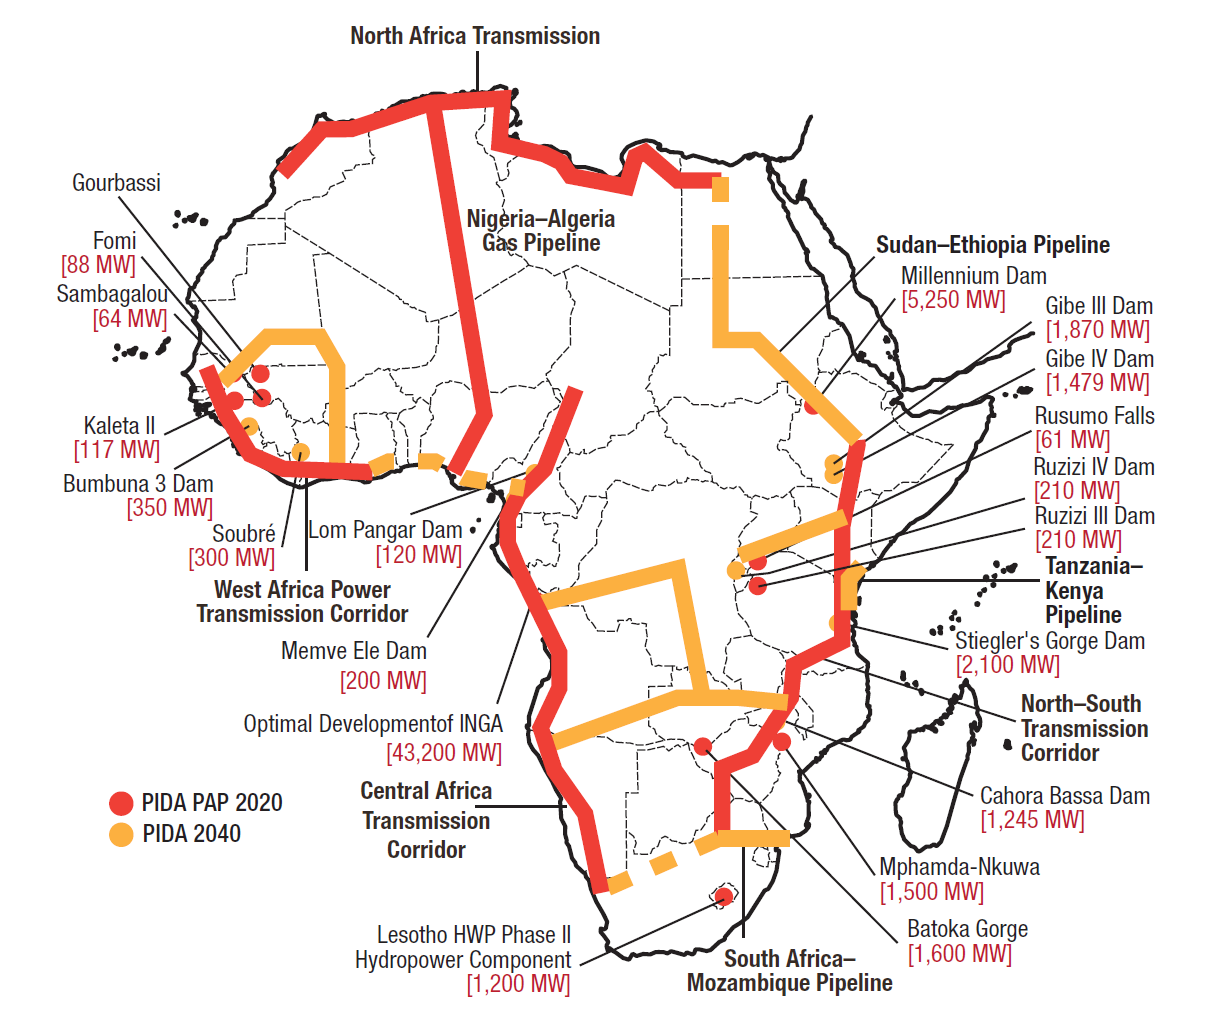 FINANCING OF THE PROGRAMME FOR INFRASTRUCTURE DEVELOPMENT IN AFRICA